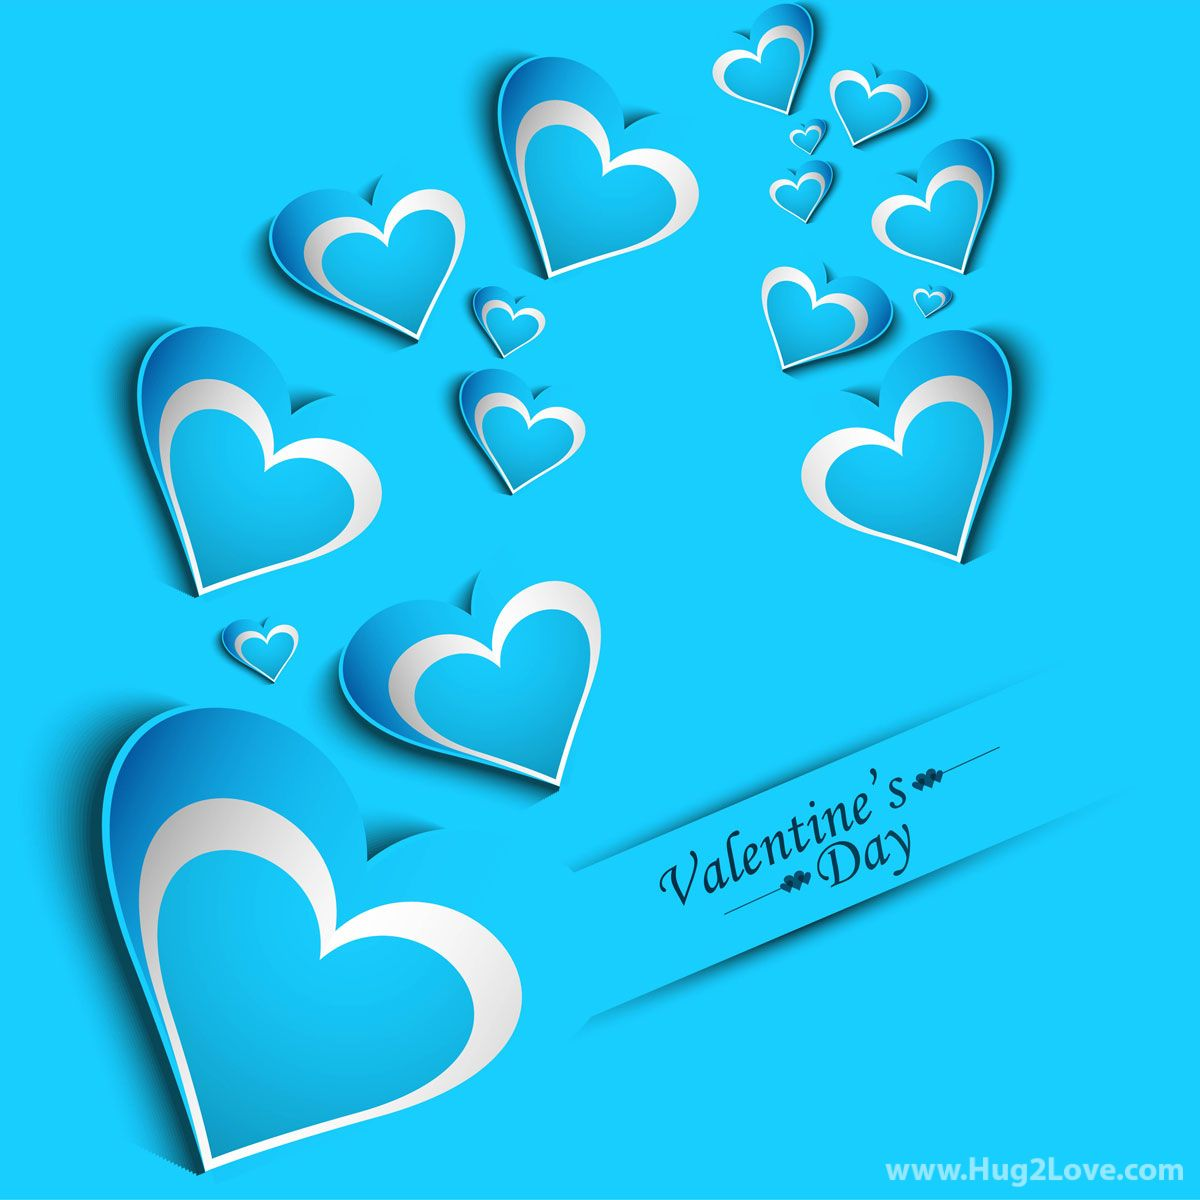 Top 100 Happy Valentines Day Images Wallpapers 2016 Valentine 1200x1200